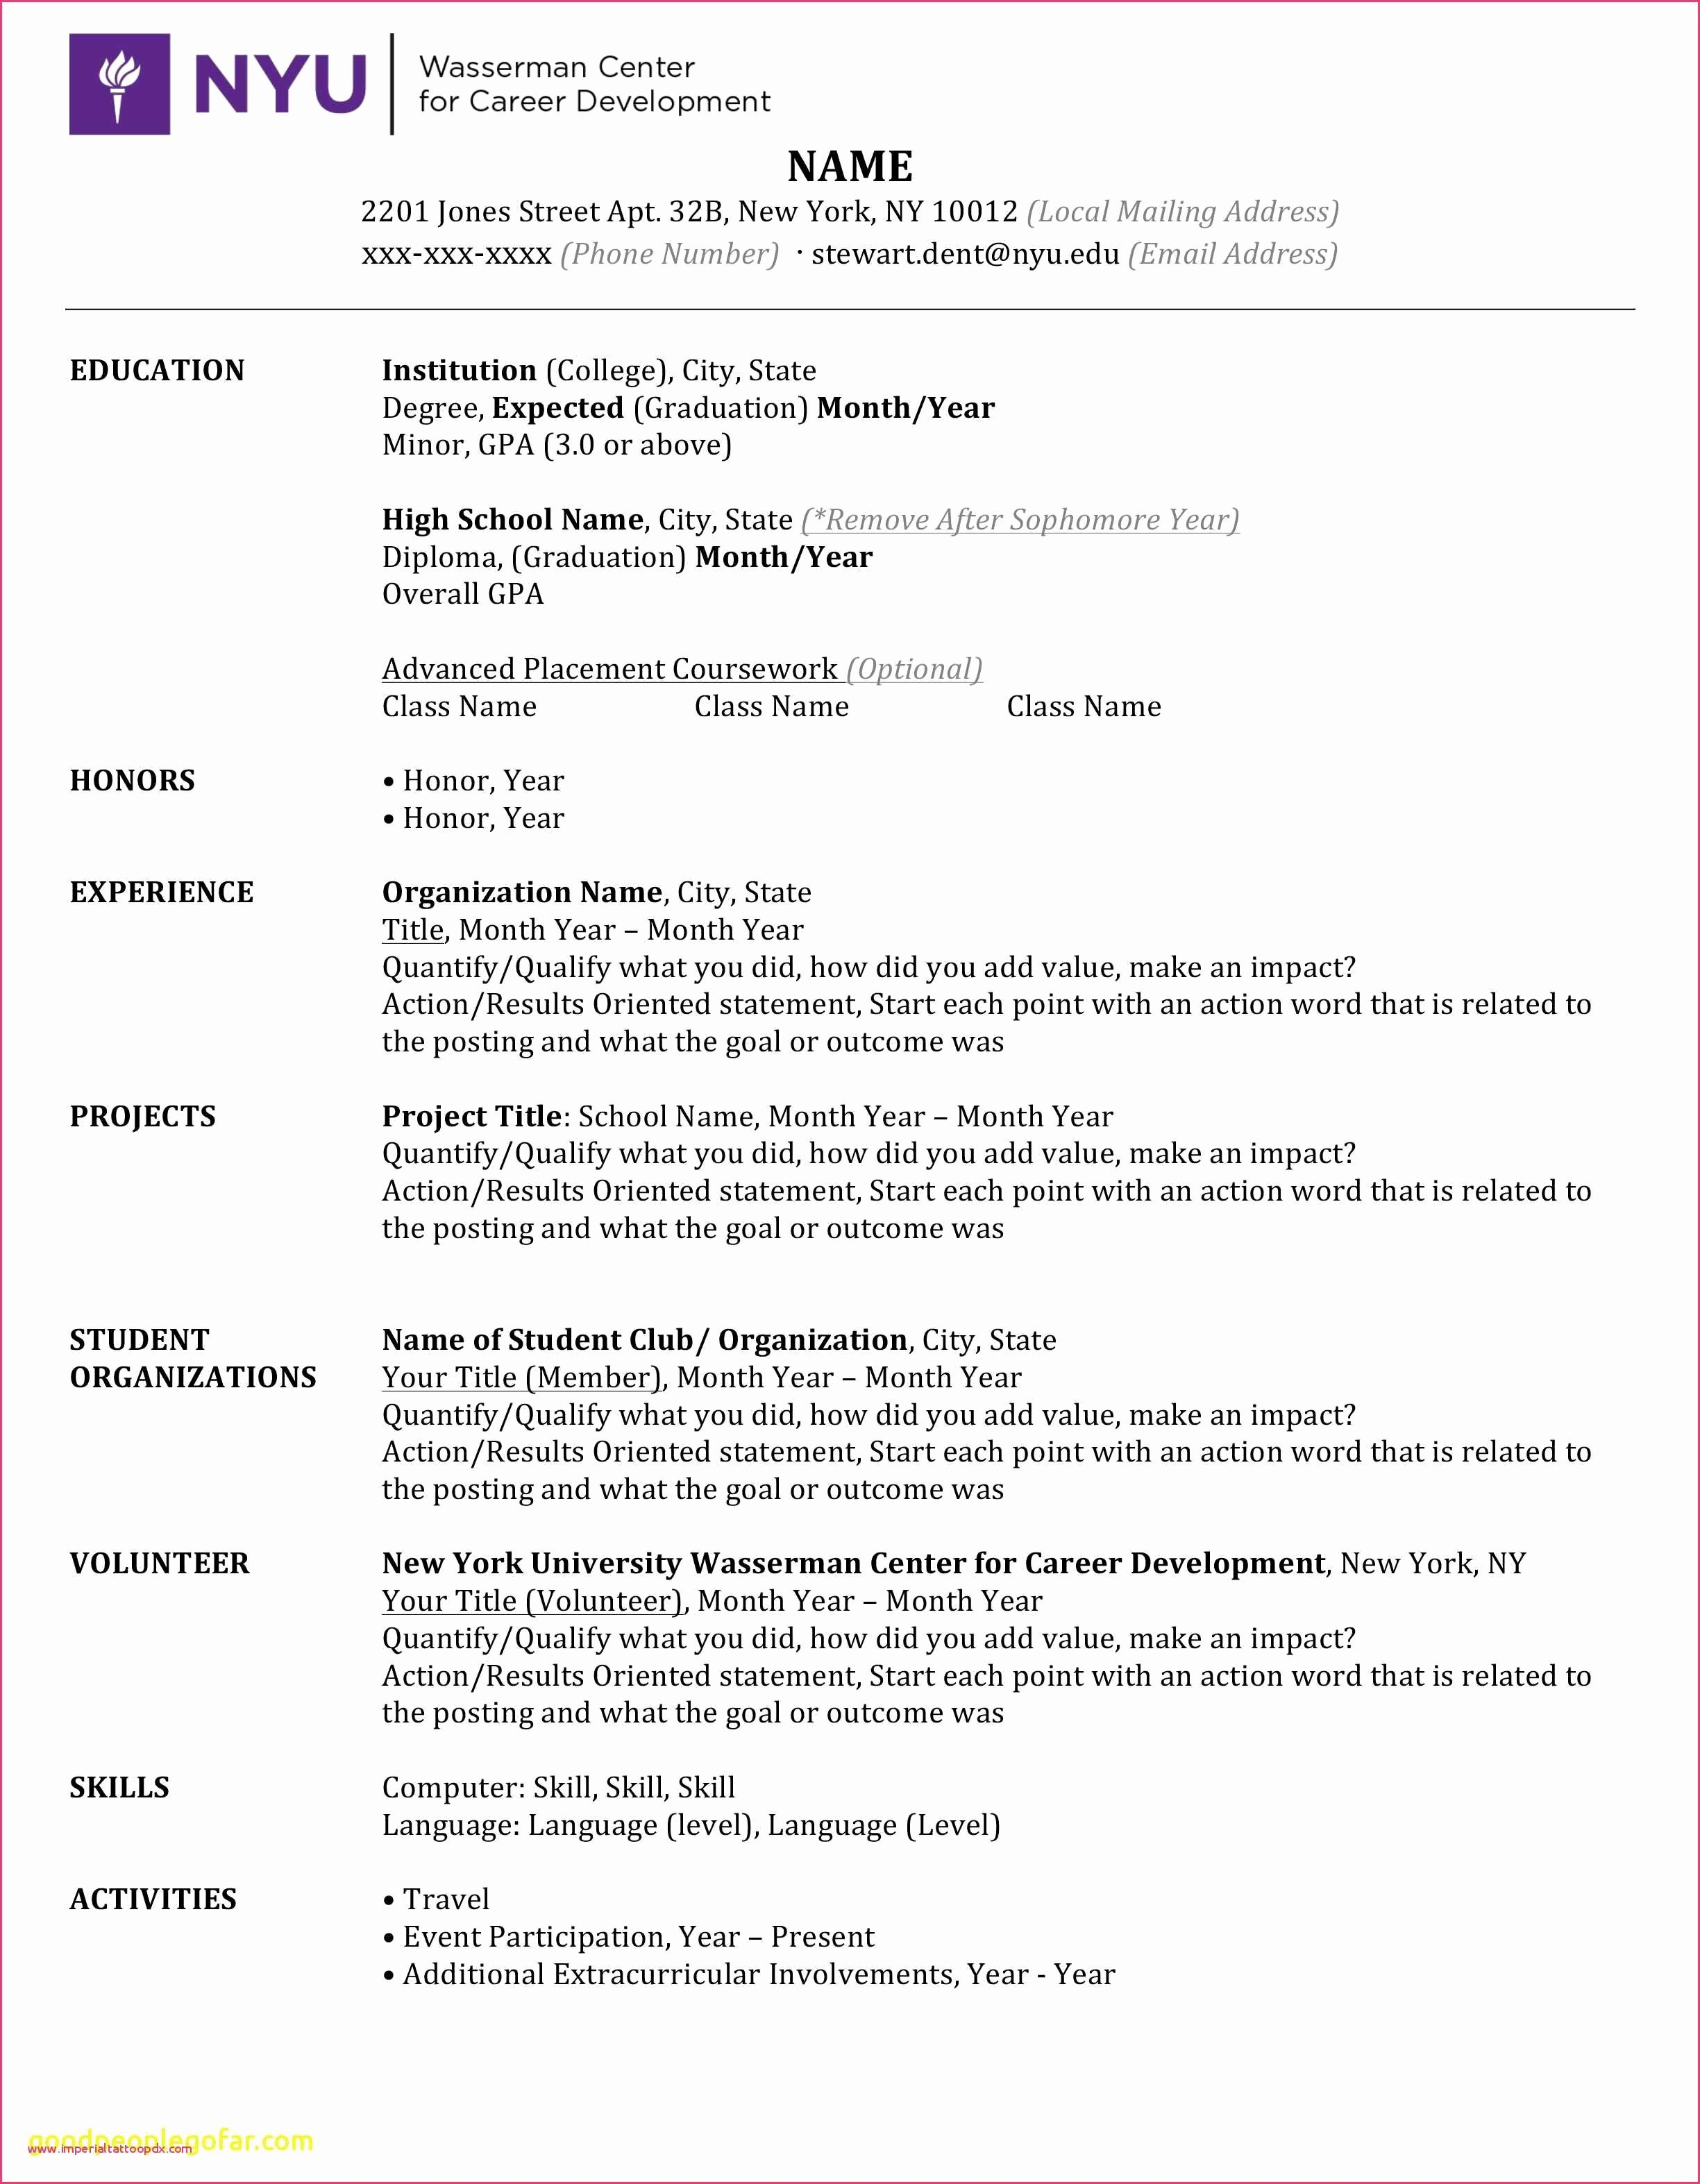 Resumes On Microsoft Word 2007 Inspirational 46 Resume Template Download for Microsoft Word 2007